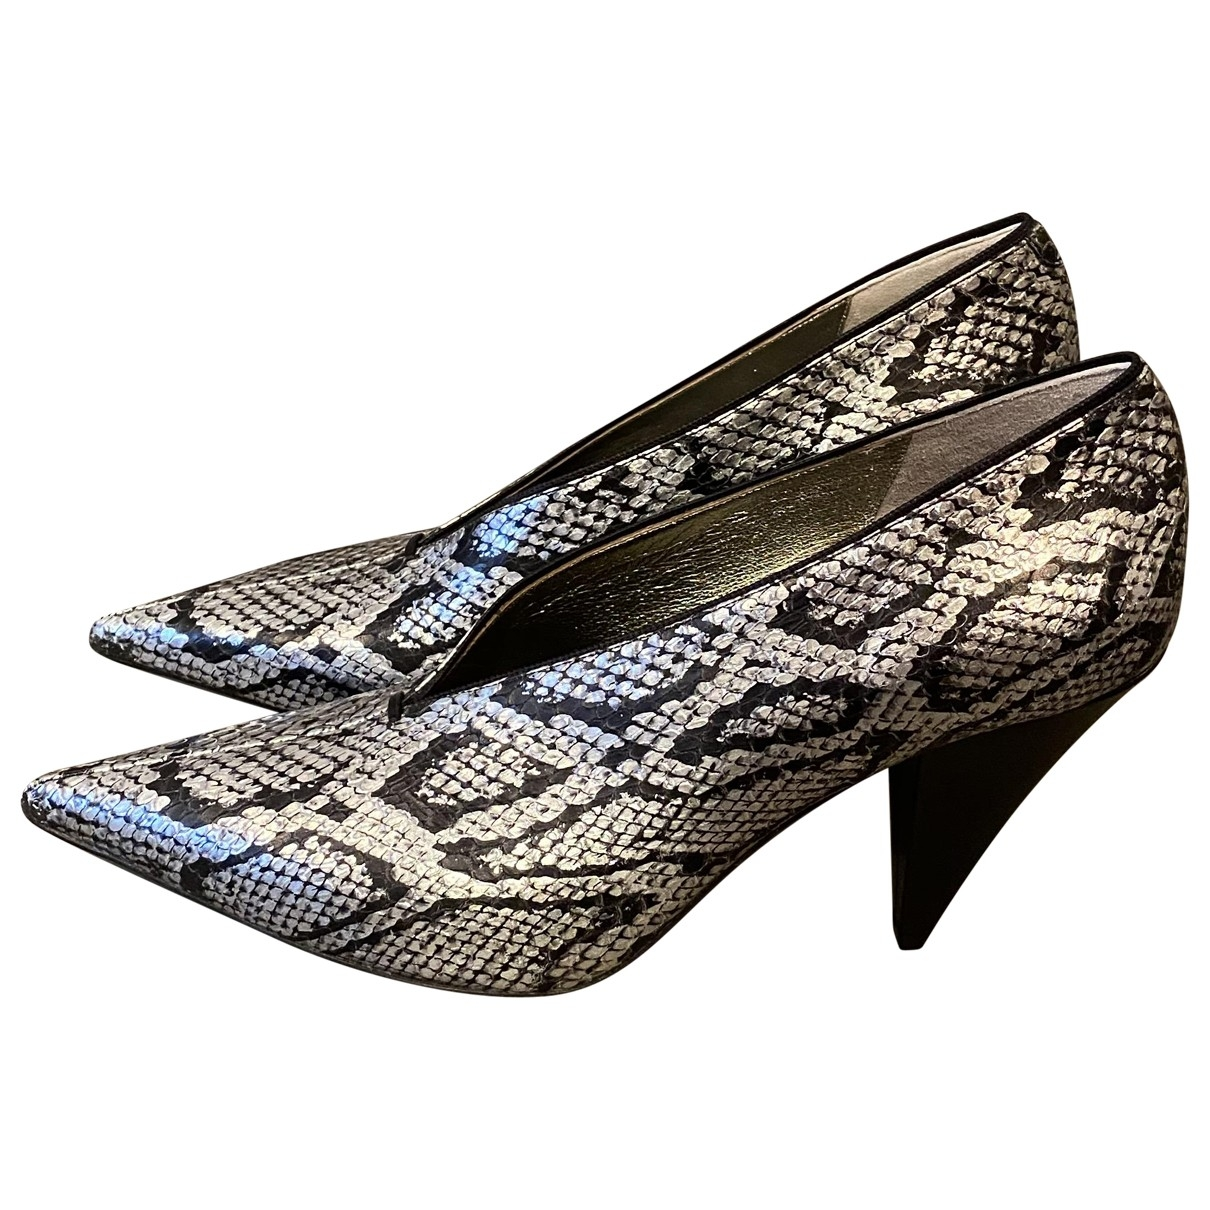 Celine Soft V Neck Pumps in  silber / schwarz Leder